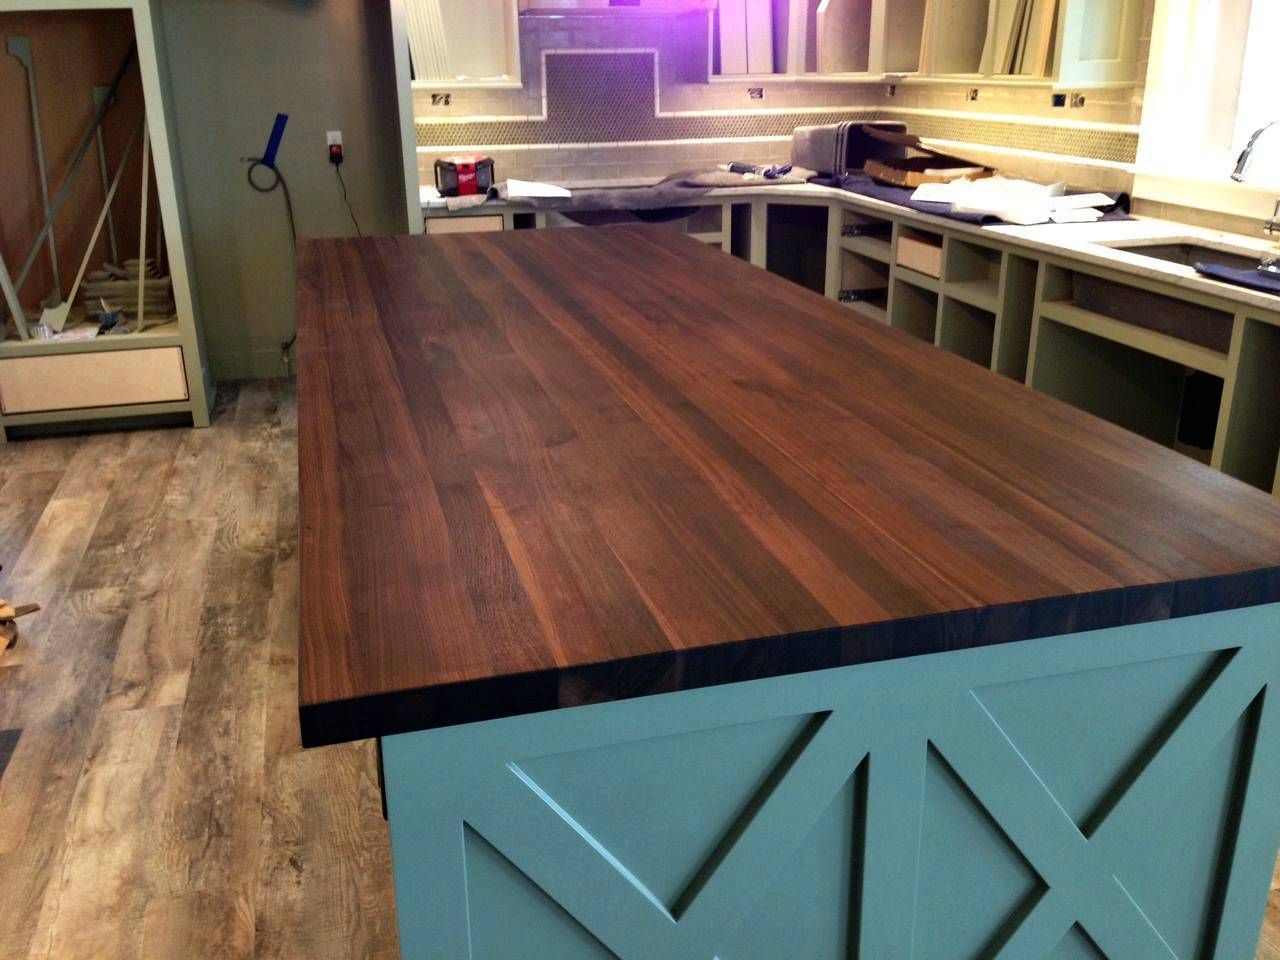 Image Of: Fake Butcher Block Countertop (like The Cabinet Color)